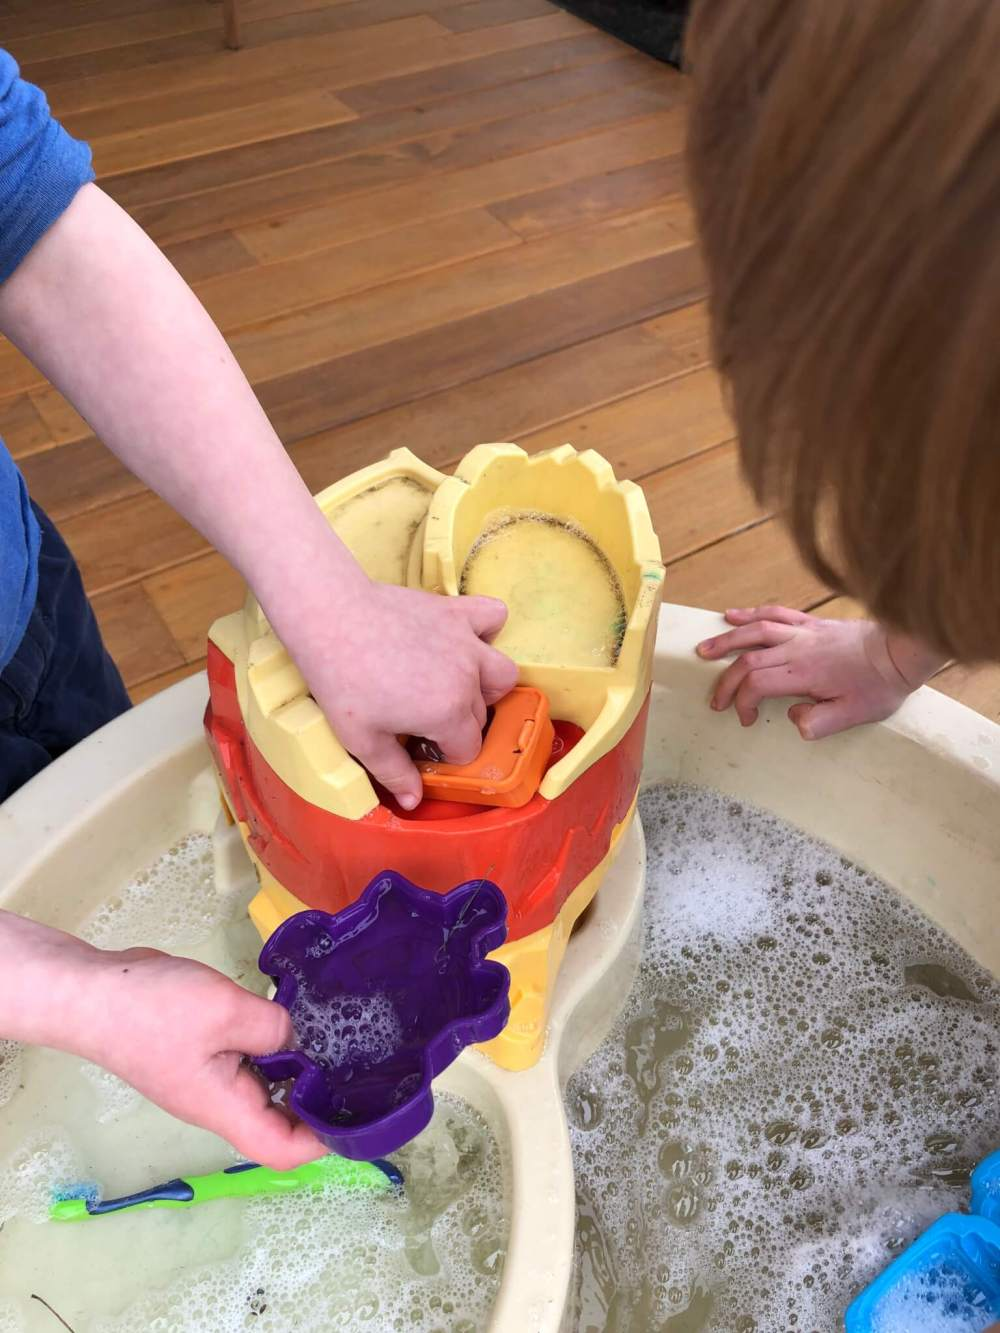 close up of children's hands as they play and clean up a water table full of soapy water and a toothbrush